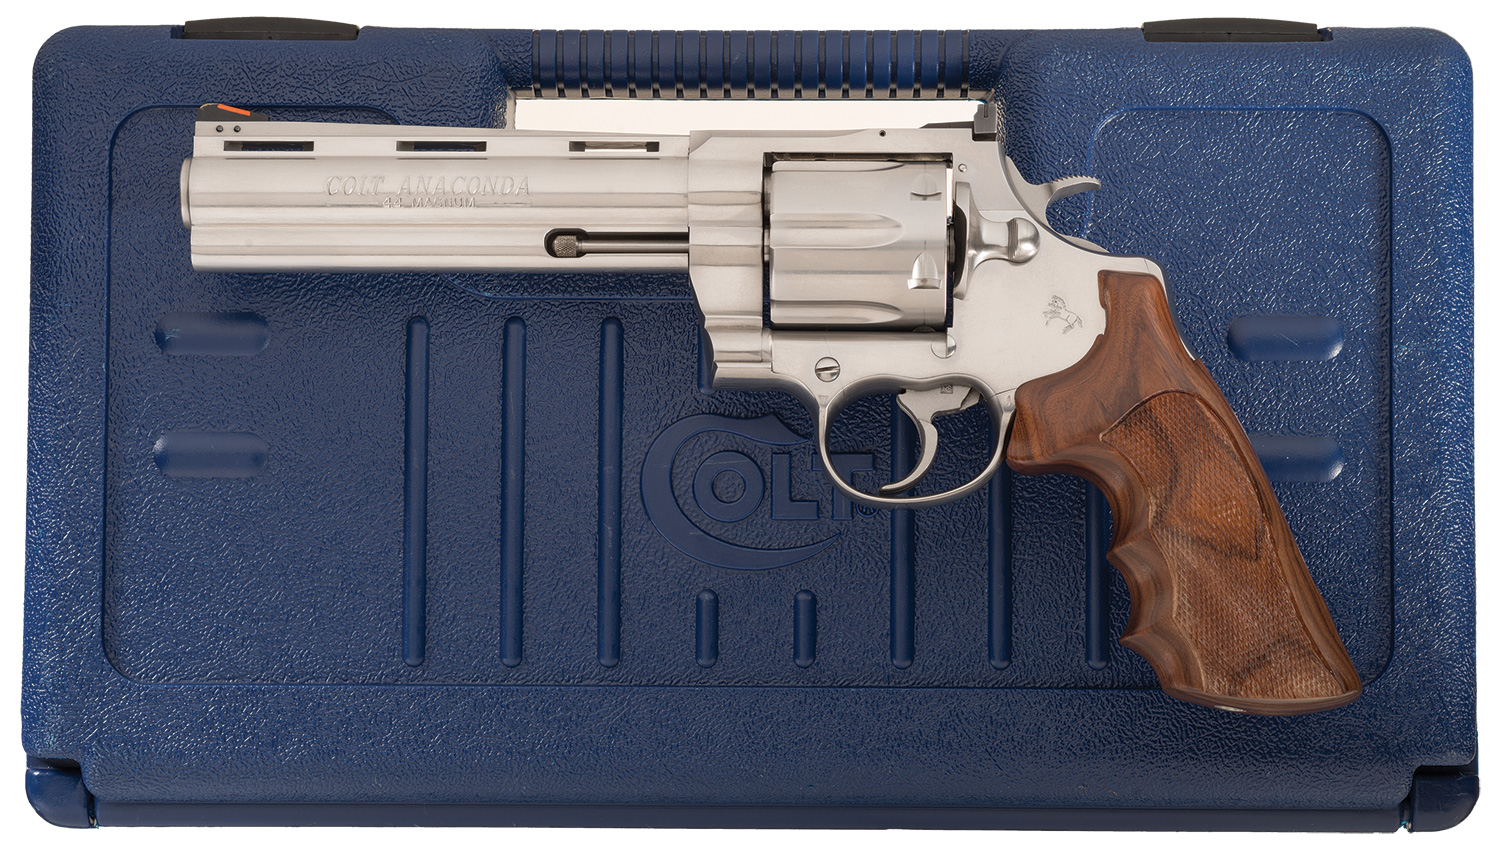 Stainless Steel Colt Anaconda Double Action Revolver with Case